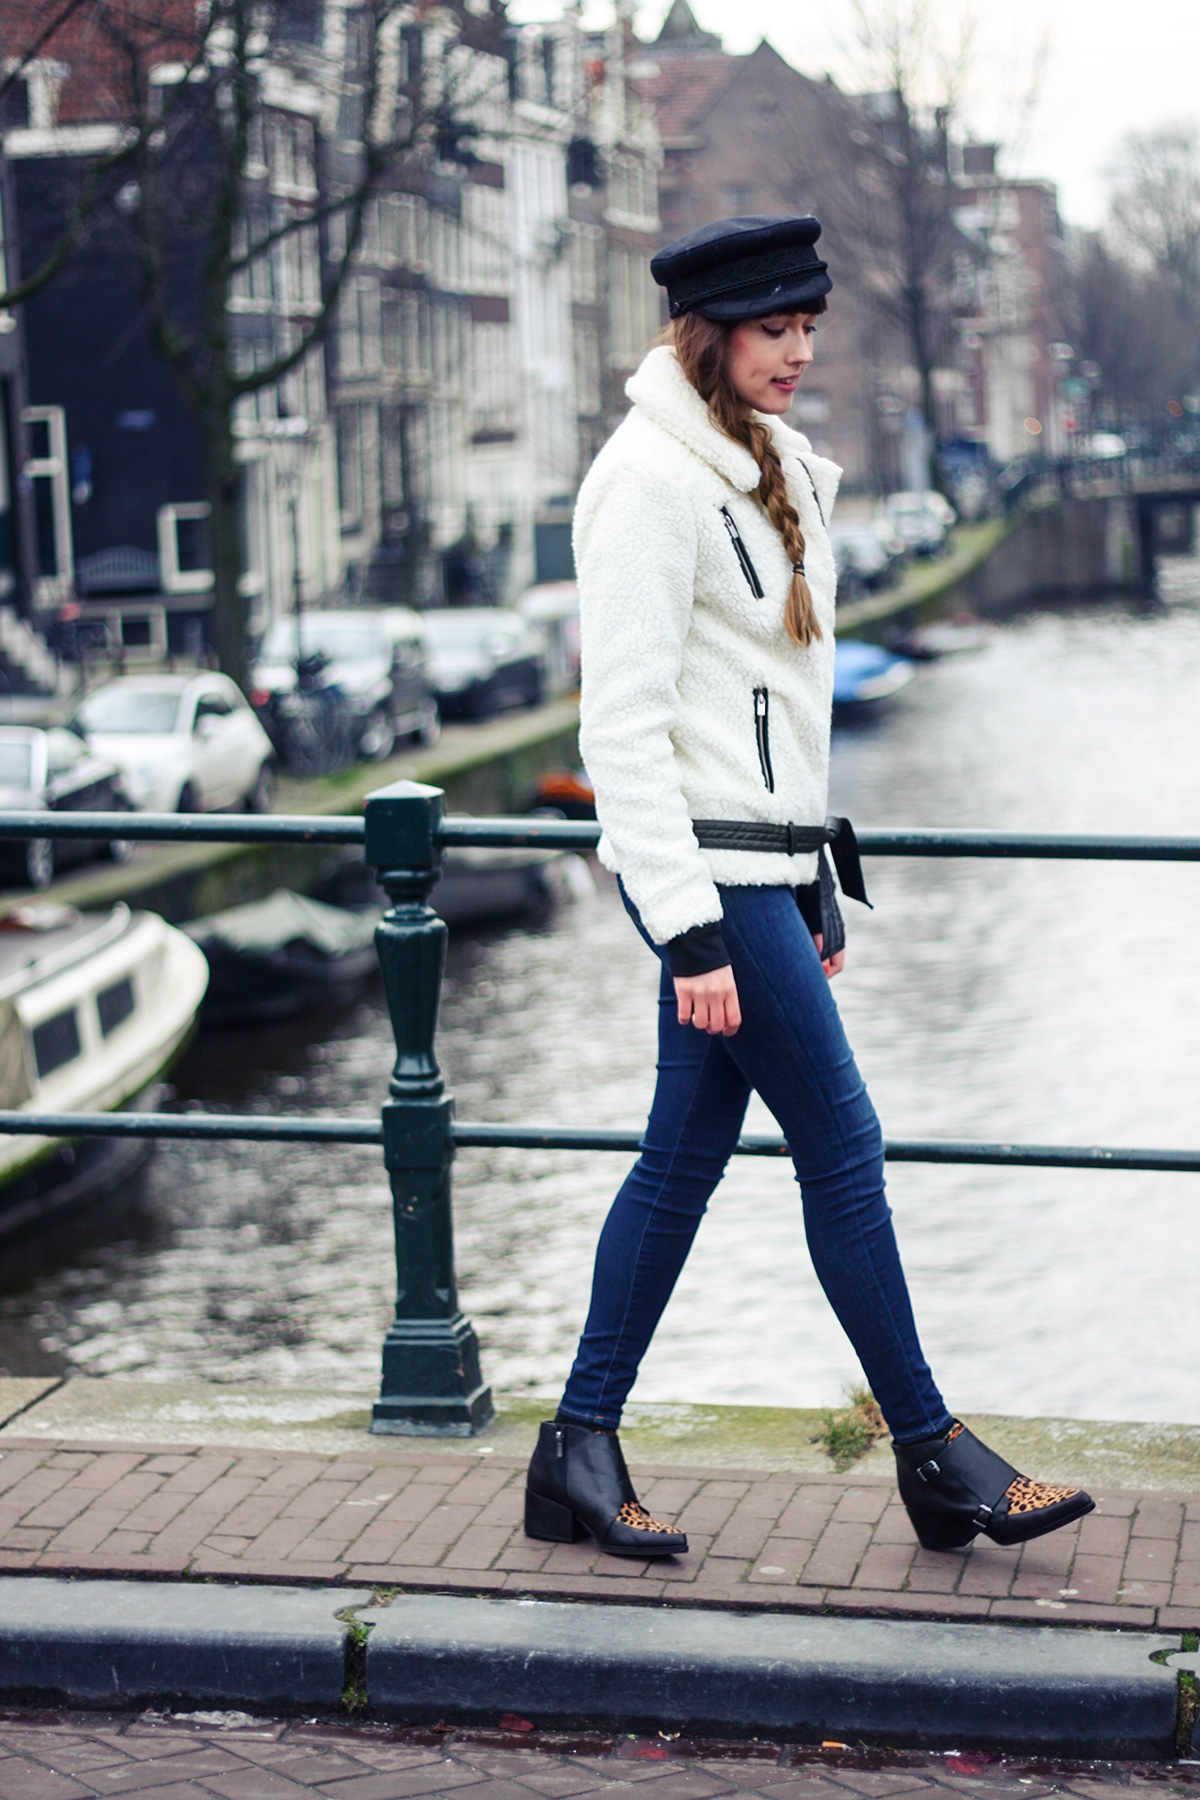 maison-scotch-teddy-biker-jacket-7-for-all-mankind-skinny-jeans-amsterdam-fashion-blogger-outfit-6